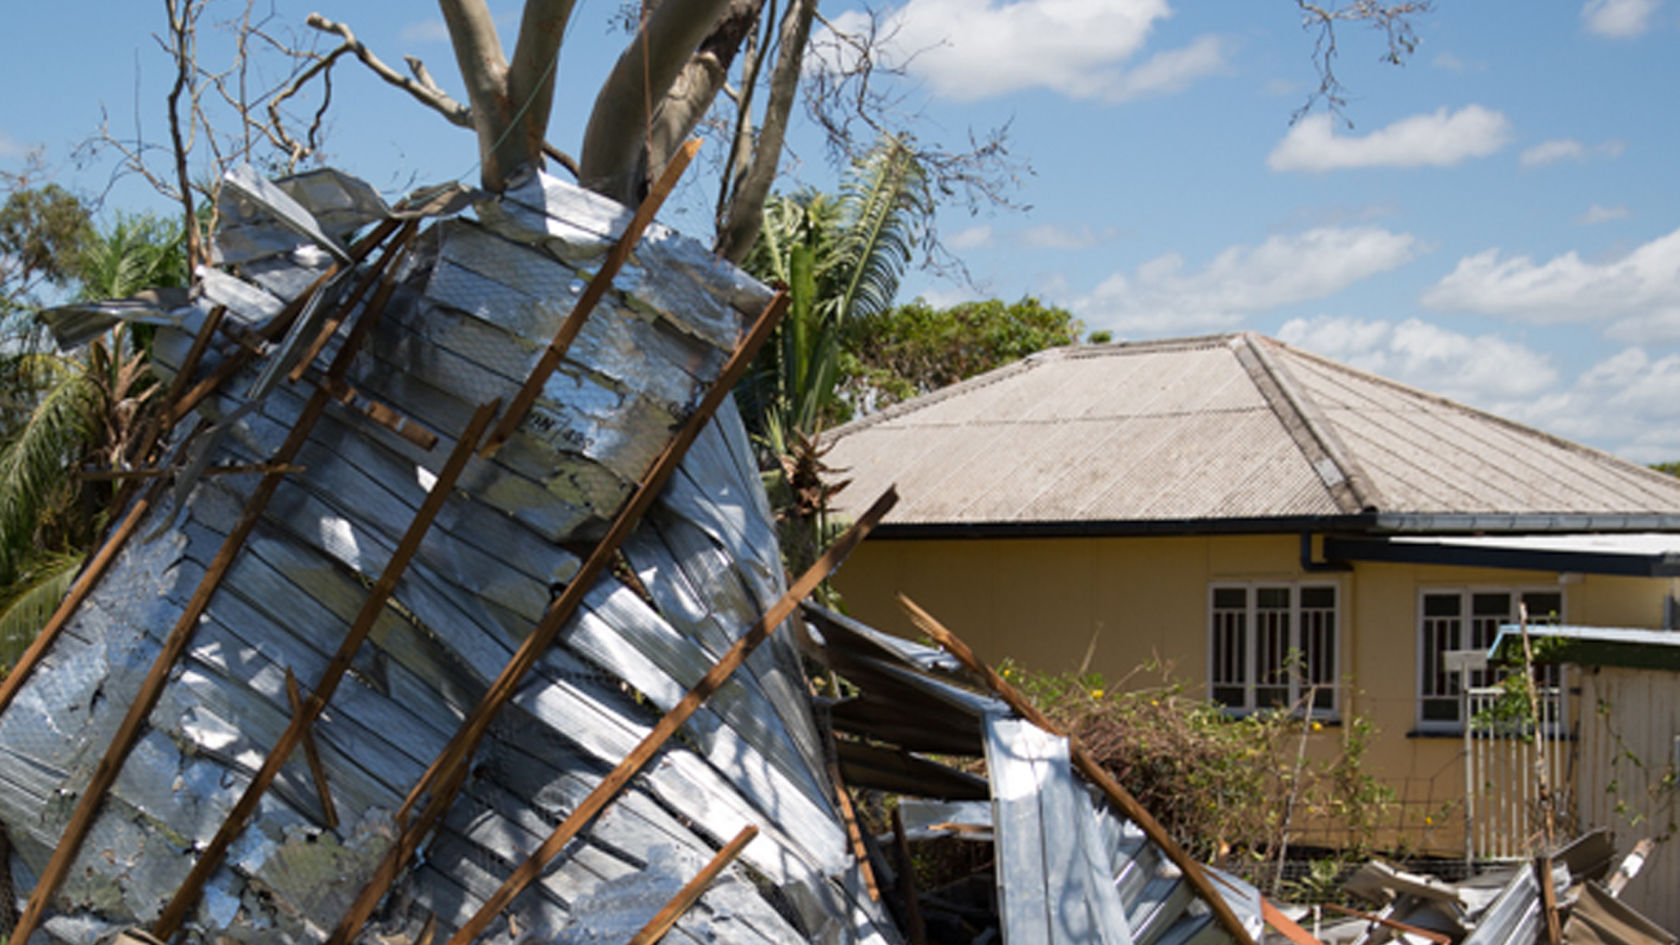 Suncorp welcomes APRA's call for greater focus on disaster mitigation